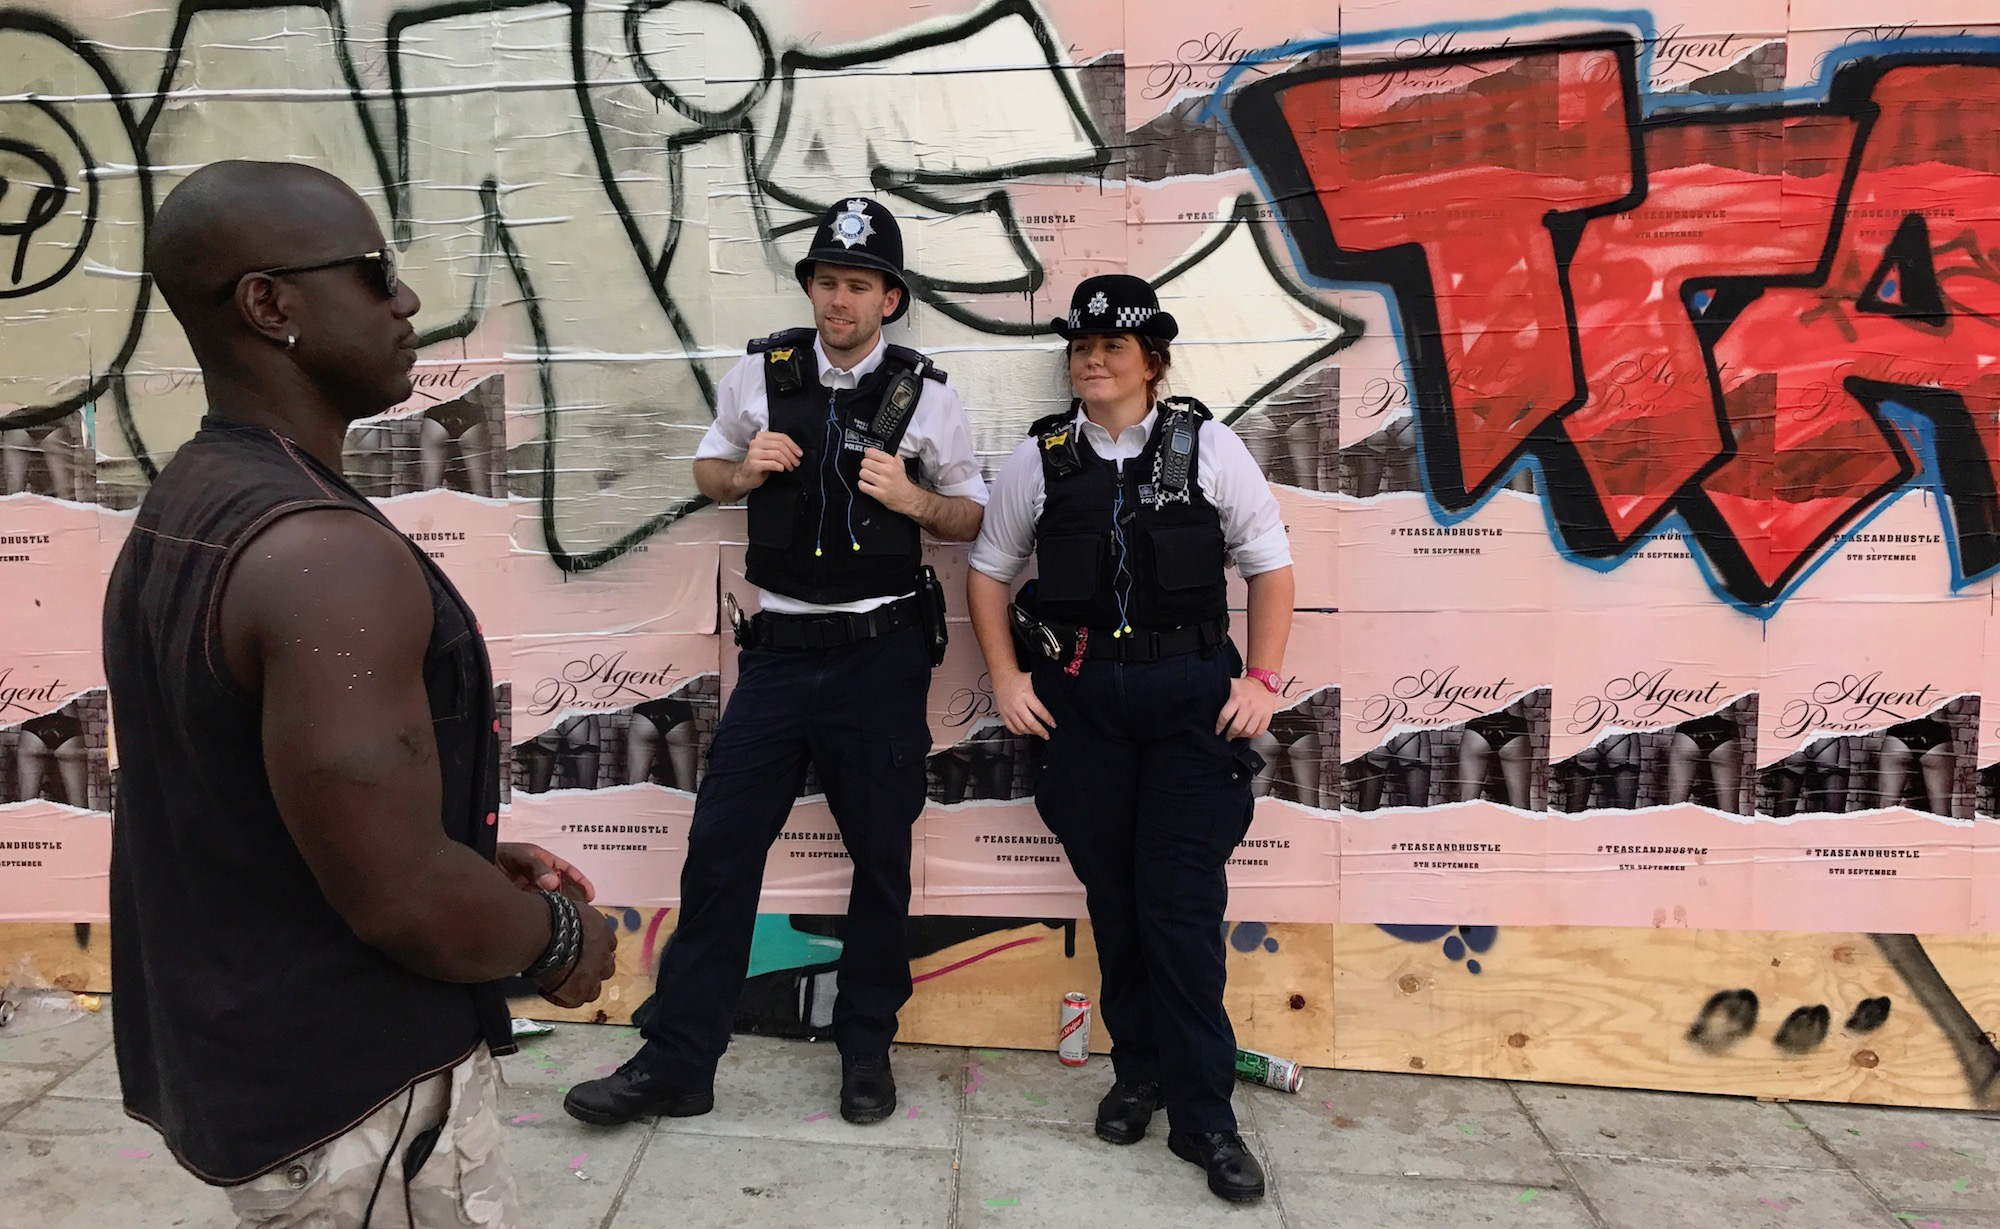 Cops Checking Out the Man. Notting Carnival London. 2017